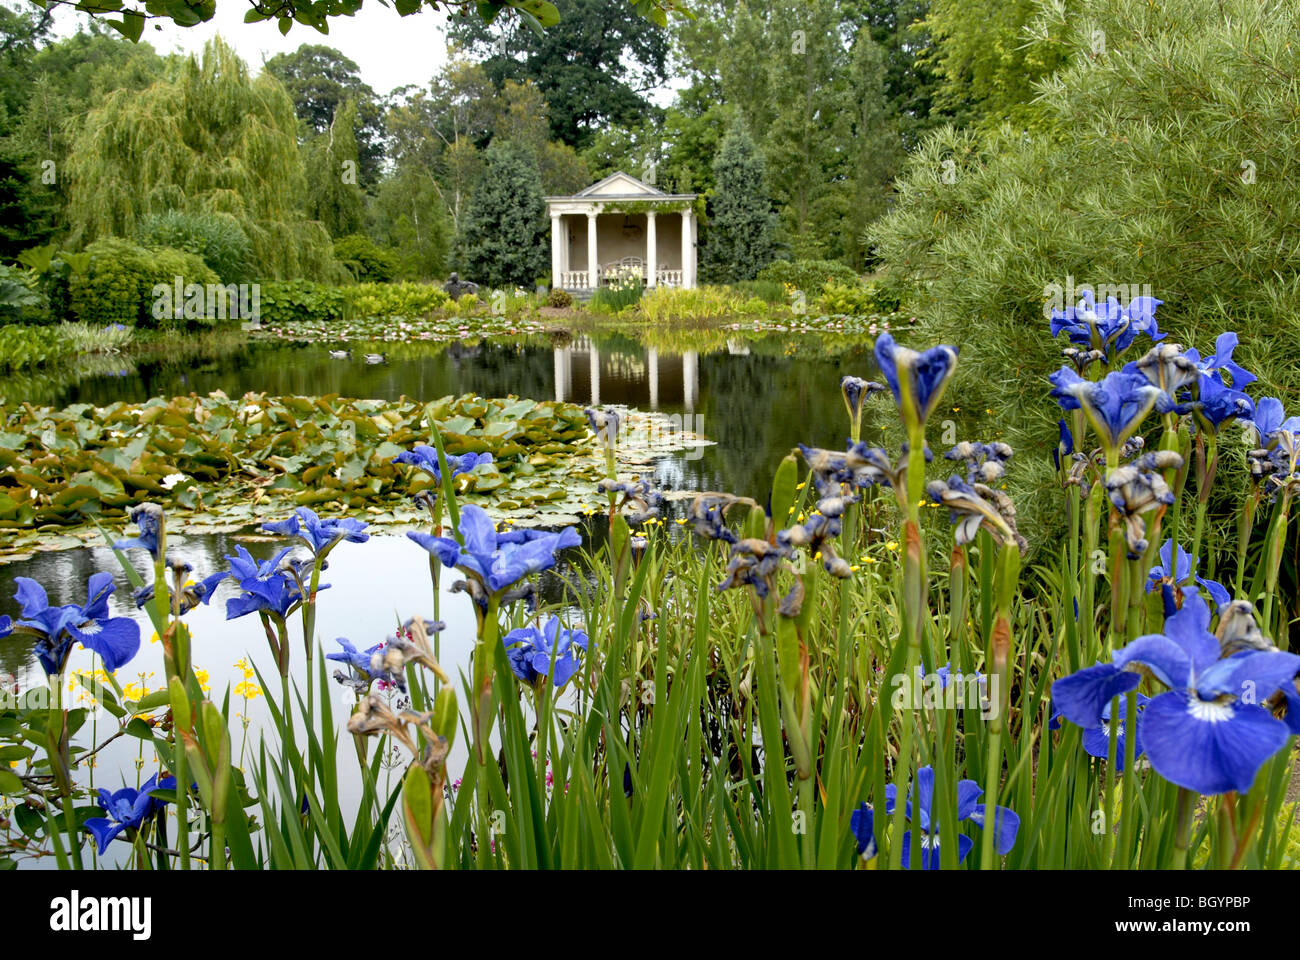 Large English Country Garden With Gazebo Viewed Across A